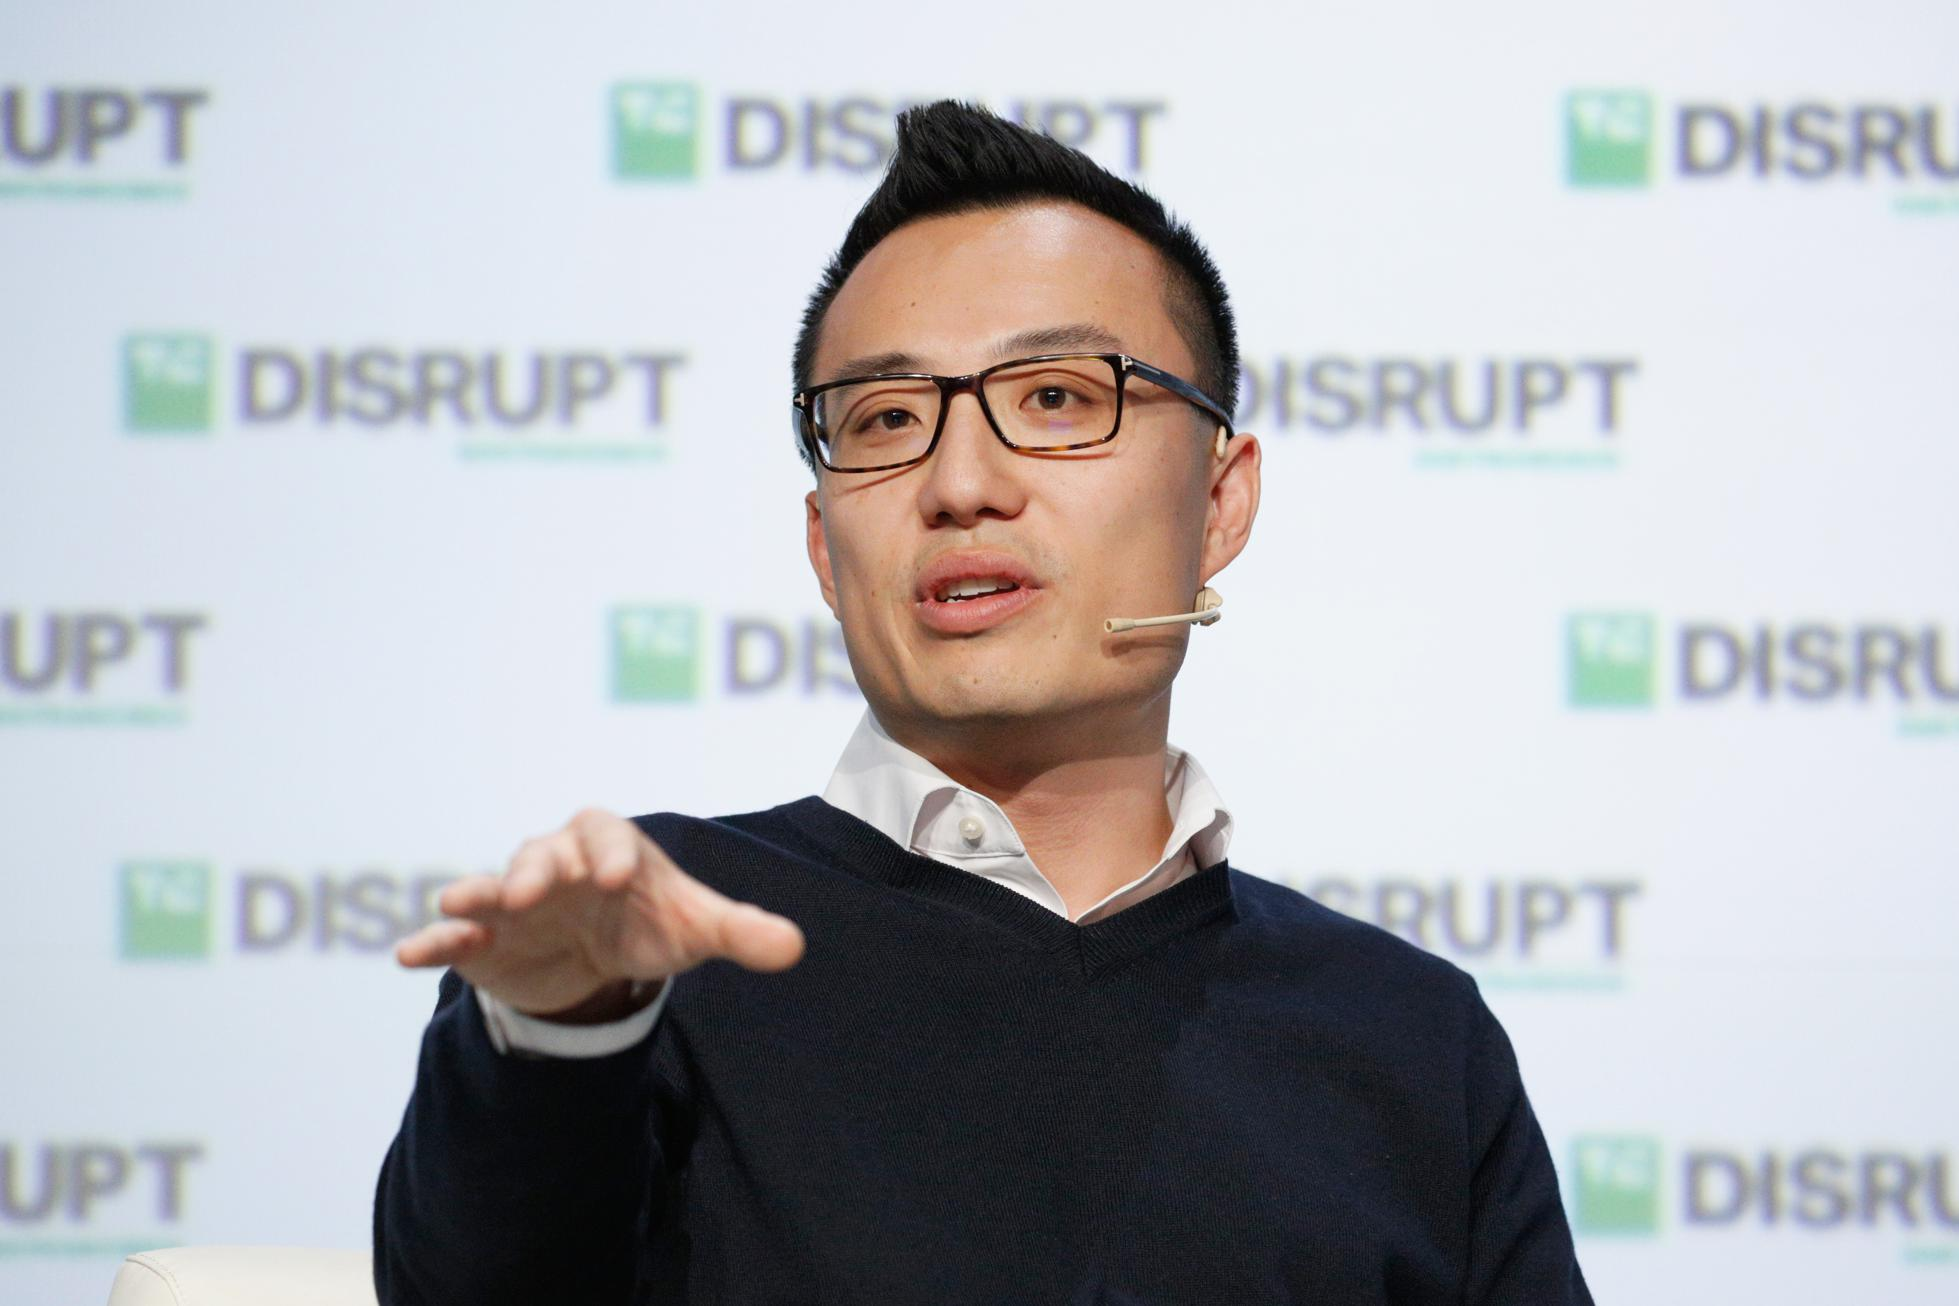 DoorDash CEO Tony Xu has built the top food delivery app thanks to contrarian strategies like going after suburban areas and chain restaurants, while its two biggest rivals UberEats and GrubHub focused on independent restaurants in coastal cities.